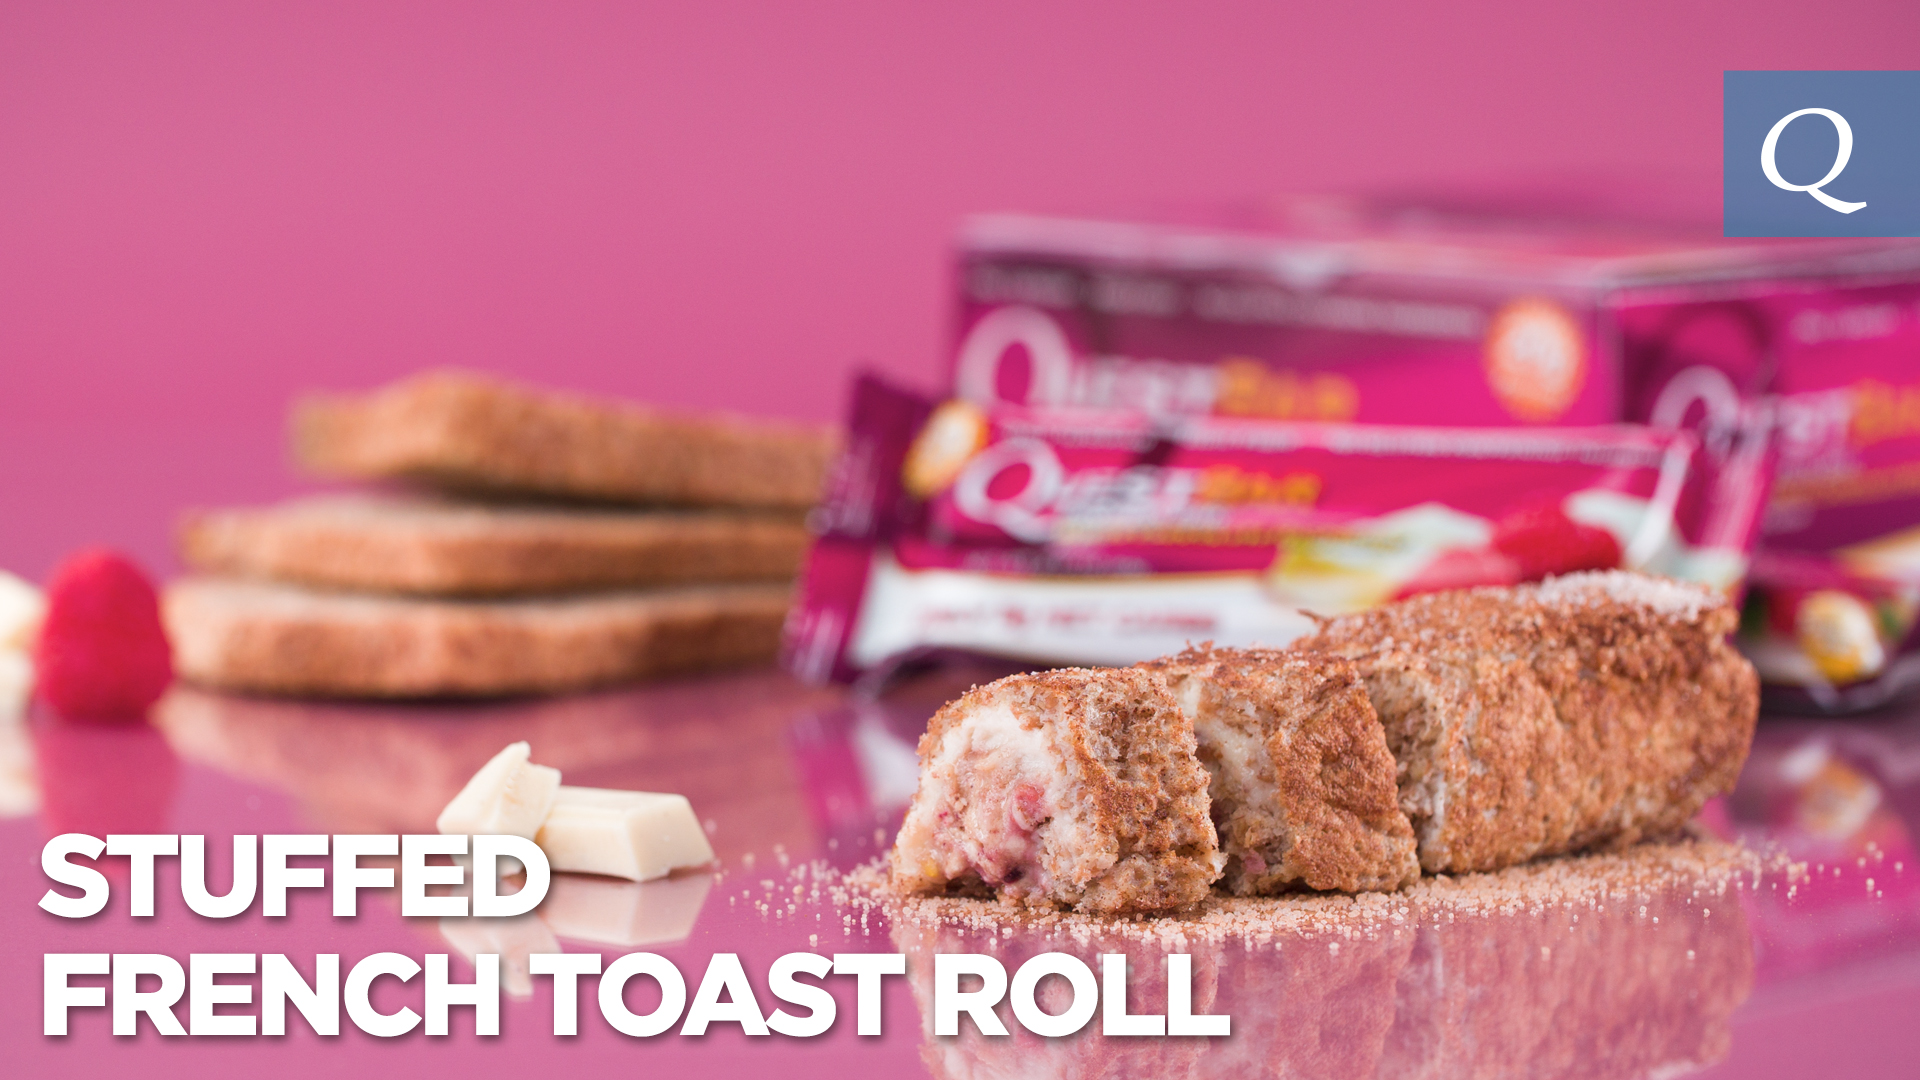 Quest Nutrition Stuffed French Toast Roll #15SecondRecipe